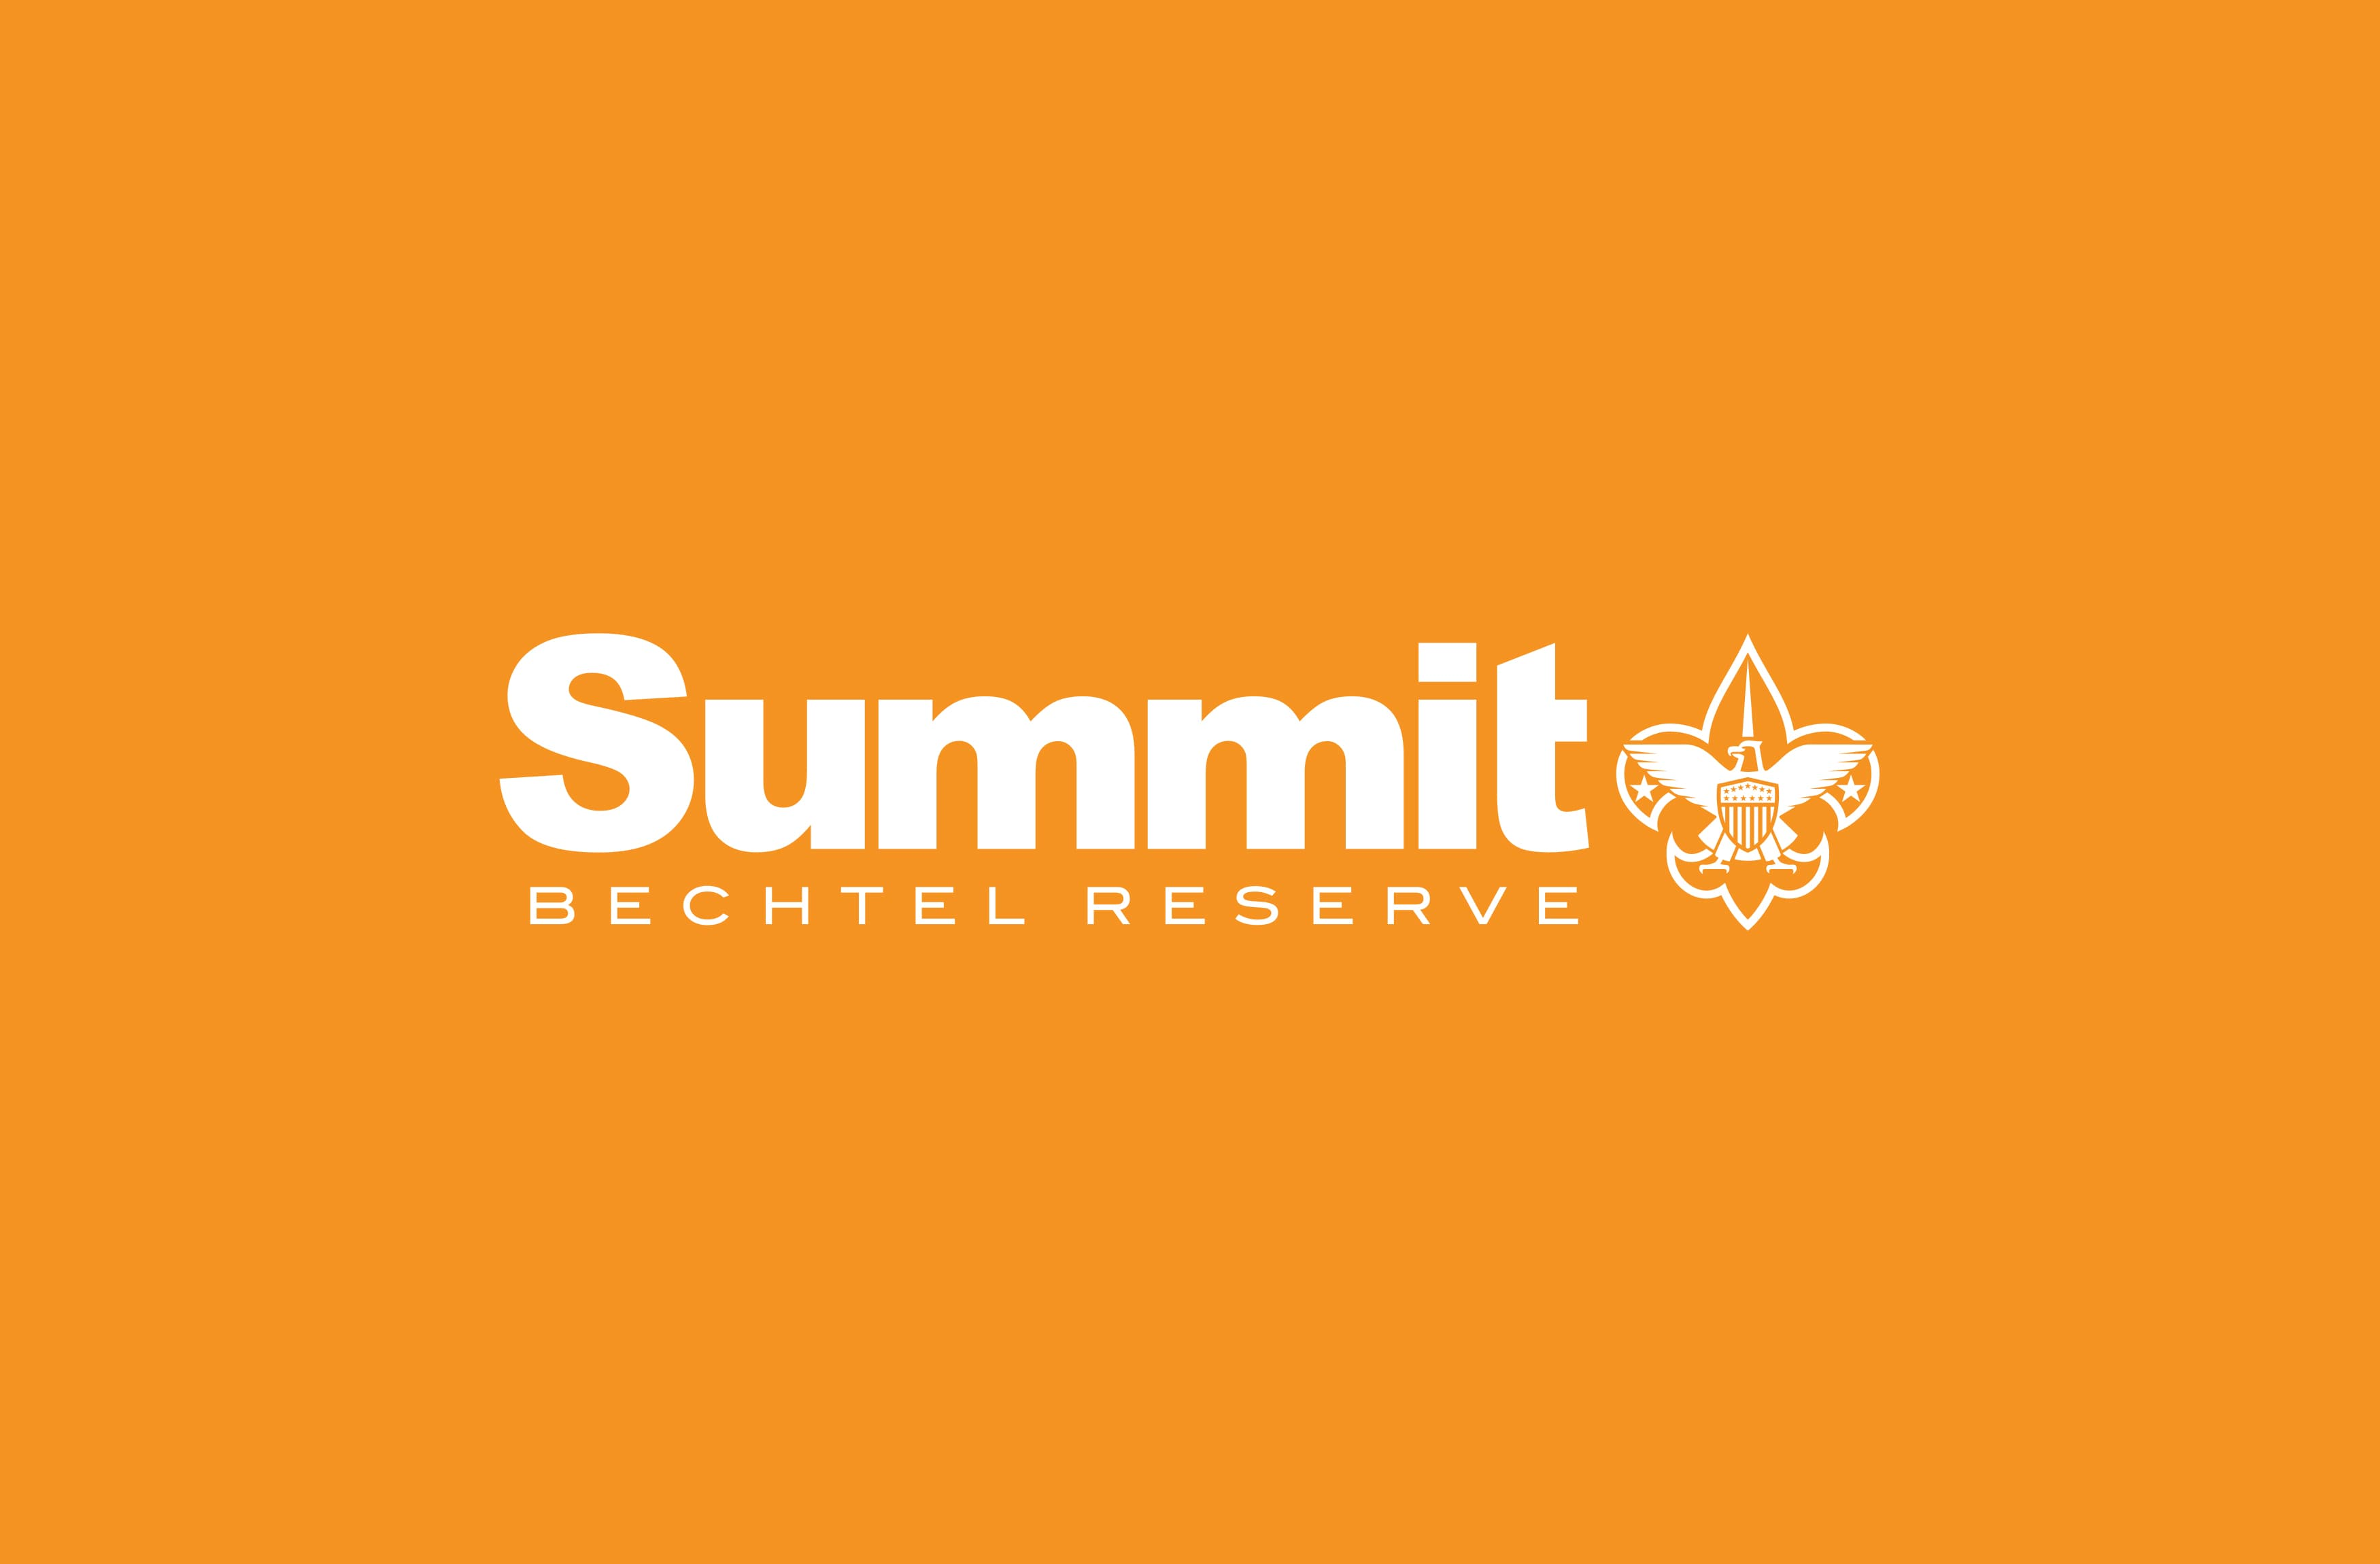 Boy Scouts of America, The Summit Bechtel Reserve branding